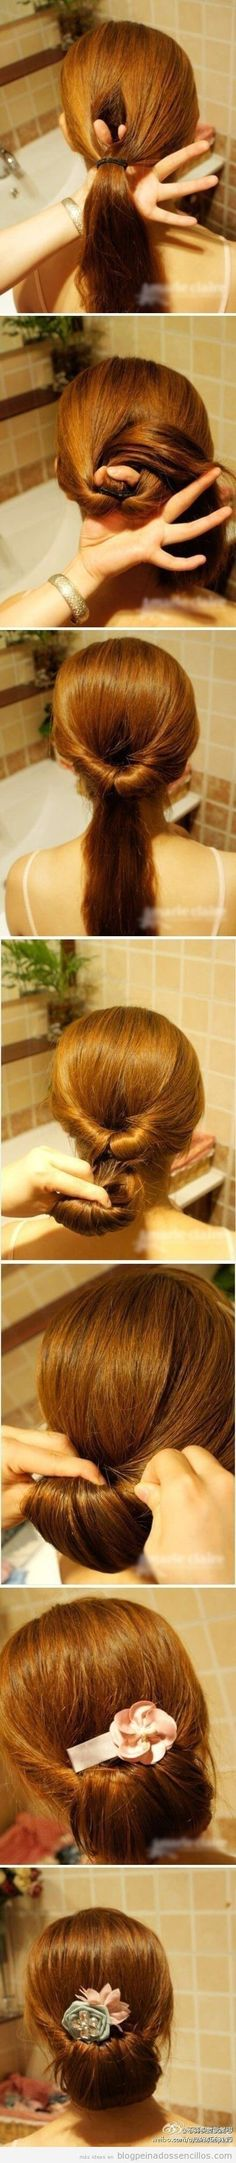 Expert Hair Care Tips For Any Age. Your hair might be your worst enemy, but it does not have to be! You can reclaim your hair with a little research and effort. First, identify your hair typ Five Minute Hairstyles, Bun Hairstyles, Wedding Hairstyles, Hairstyle Ideas, Trendy Hairstyles, Office Hairstyles, Long Haircuts, Summer Hairstyles, Hairstyle Tutorials